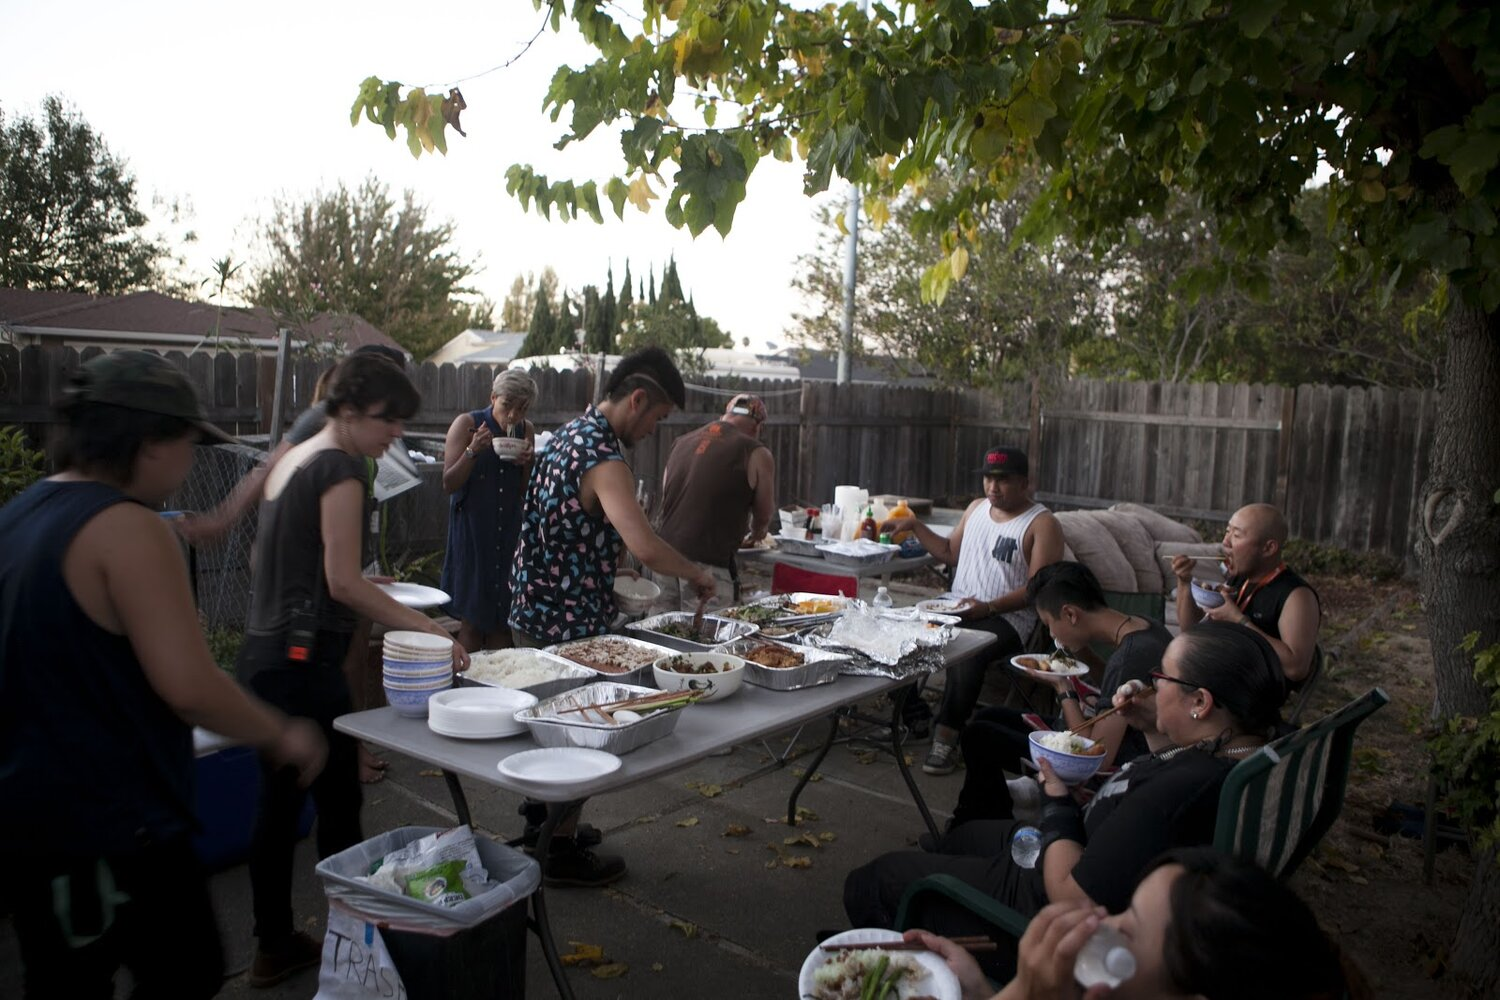 A crew of people are eating in a large backyard.